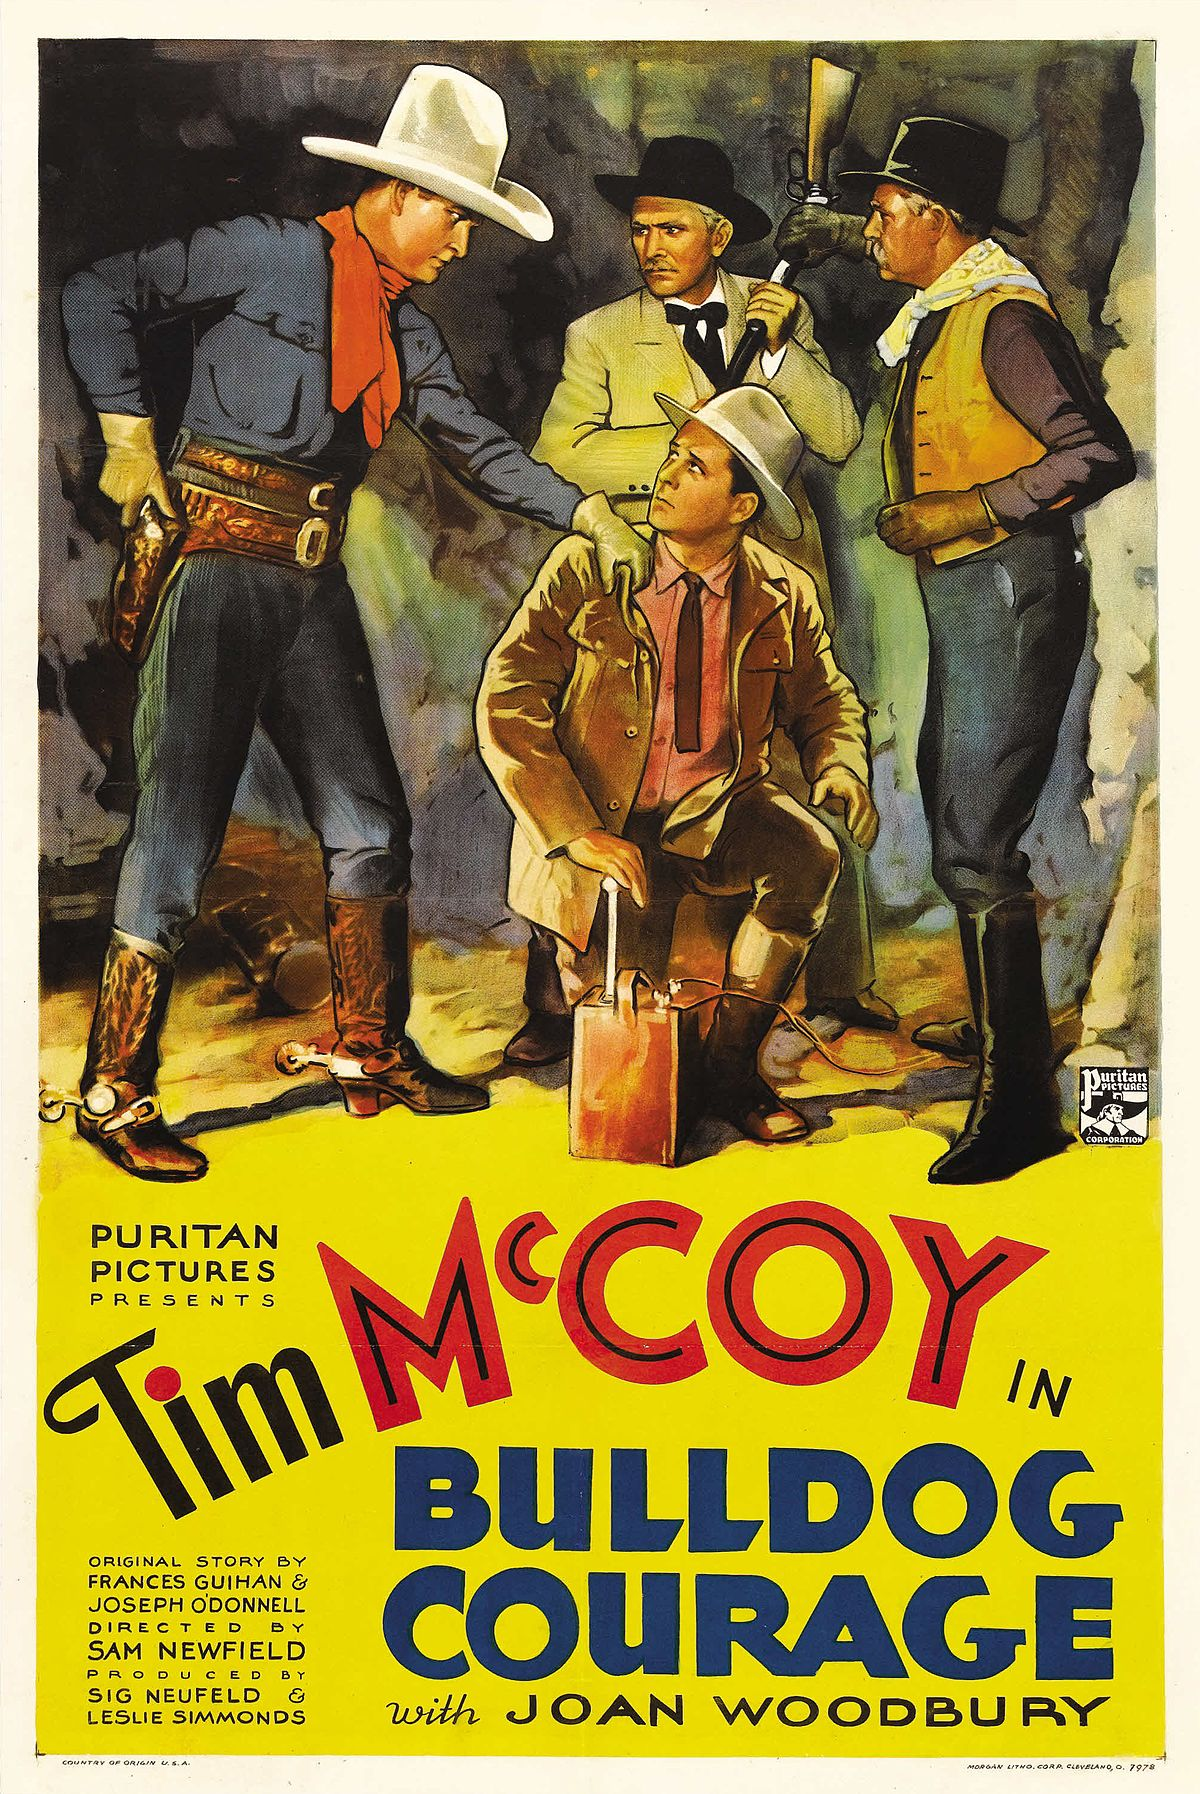 Bulldog Courage (1935 film) - Wikipedia